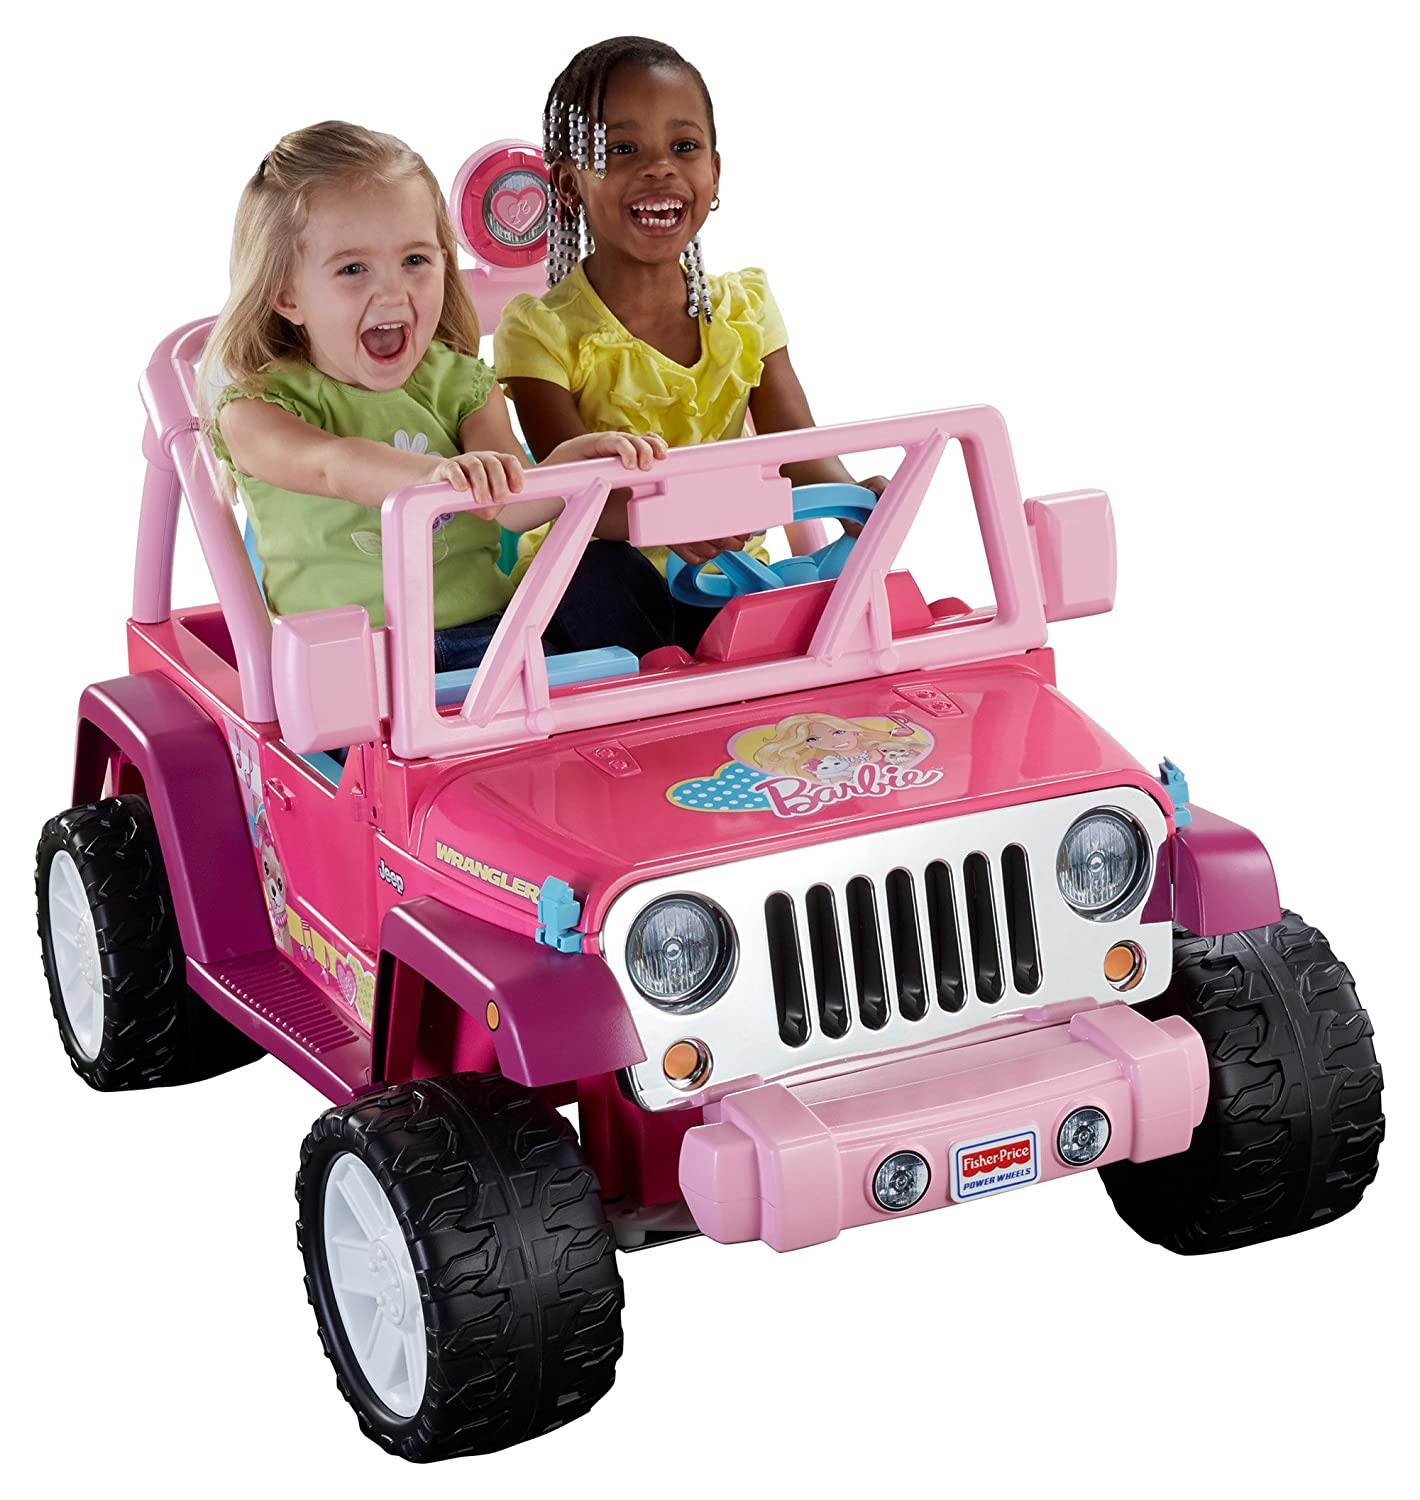 Ride On Toys Age 6 : Best toys for year old girl hot birthday